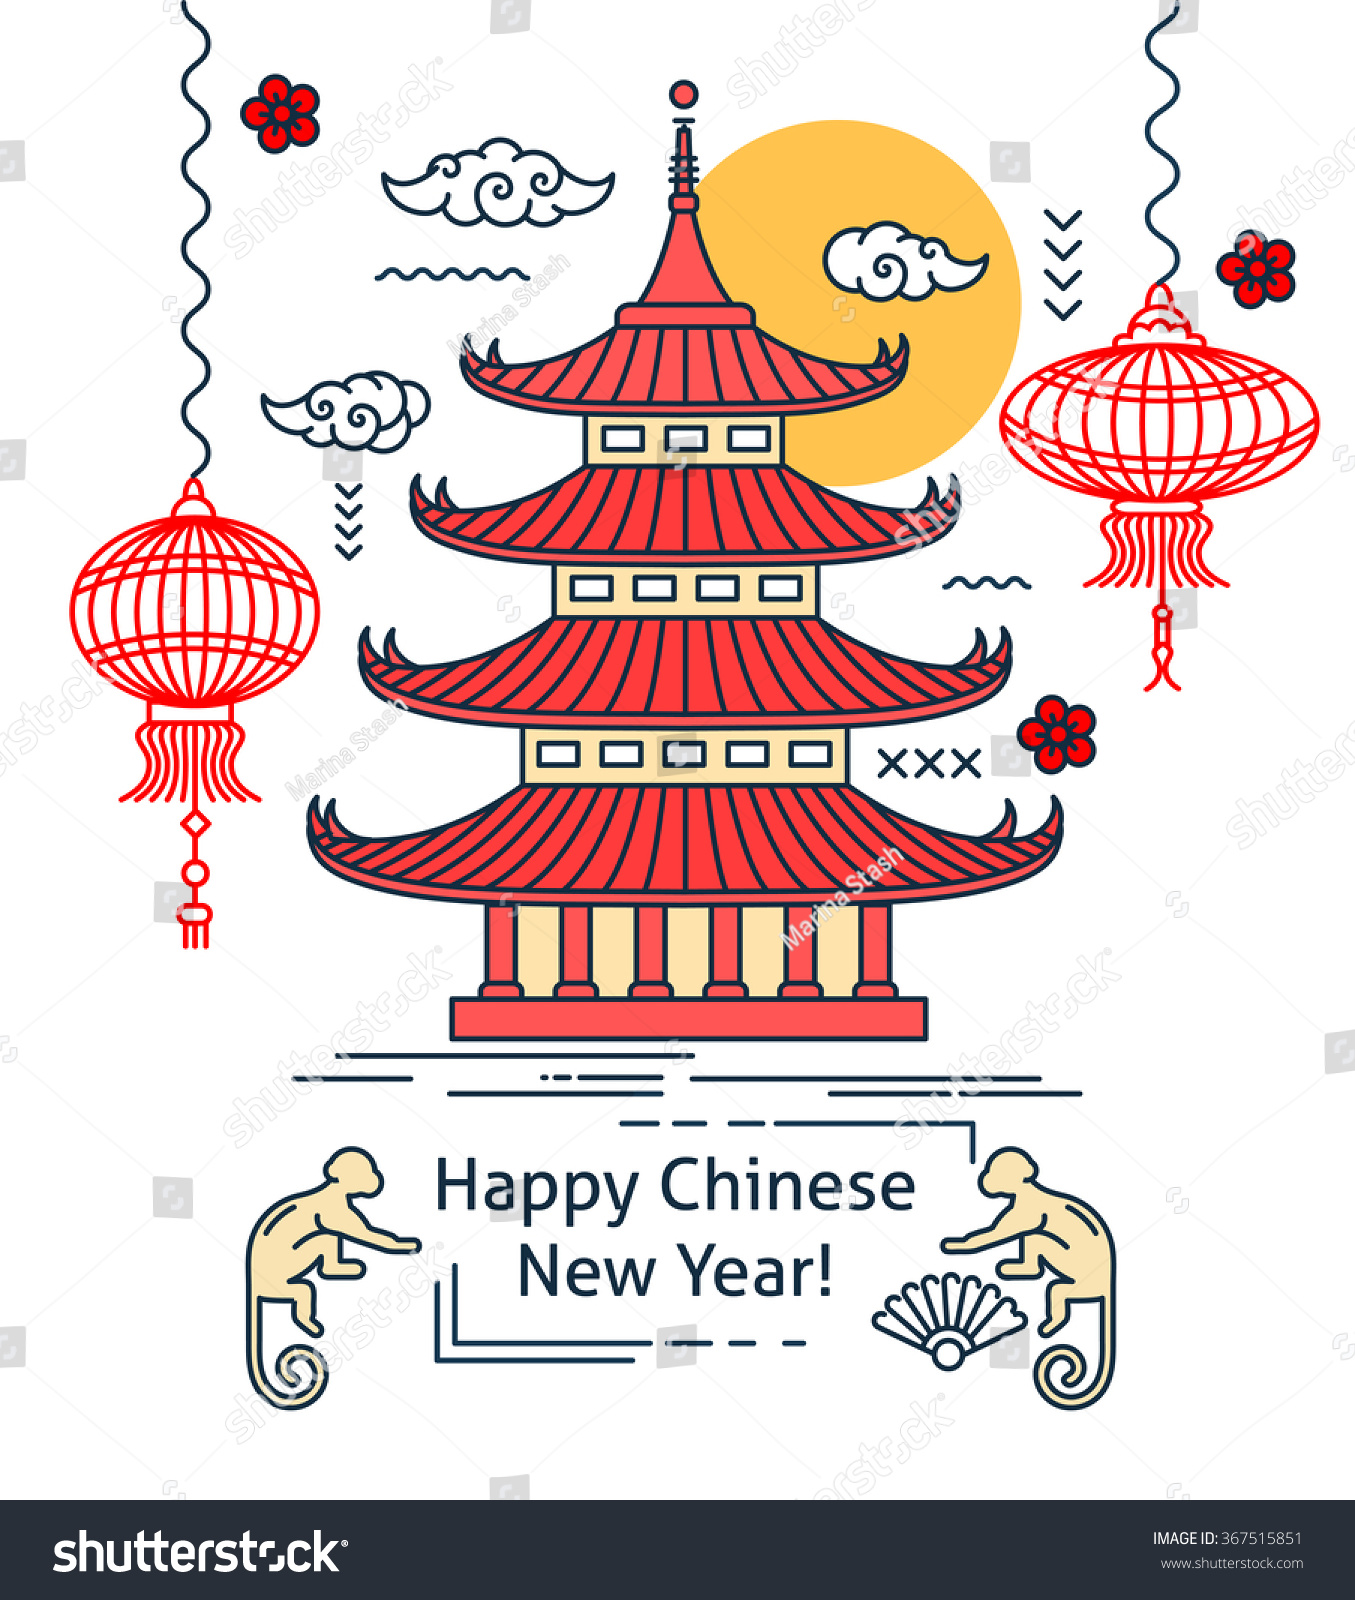 Chinese new year flat thin line stock vector 367515851 shutterstock chinese new year flat thin line greeting card template temple pagoda house lantern kristyandbryce Gallery